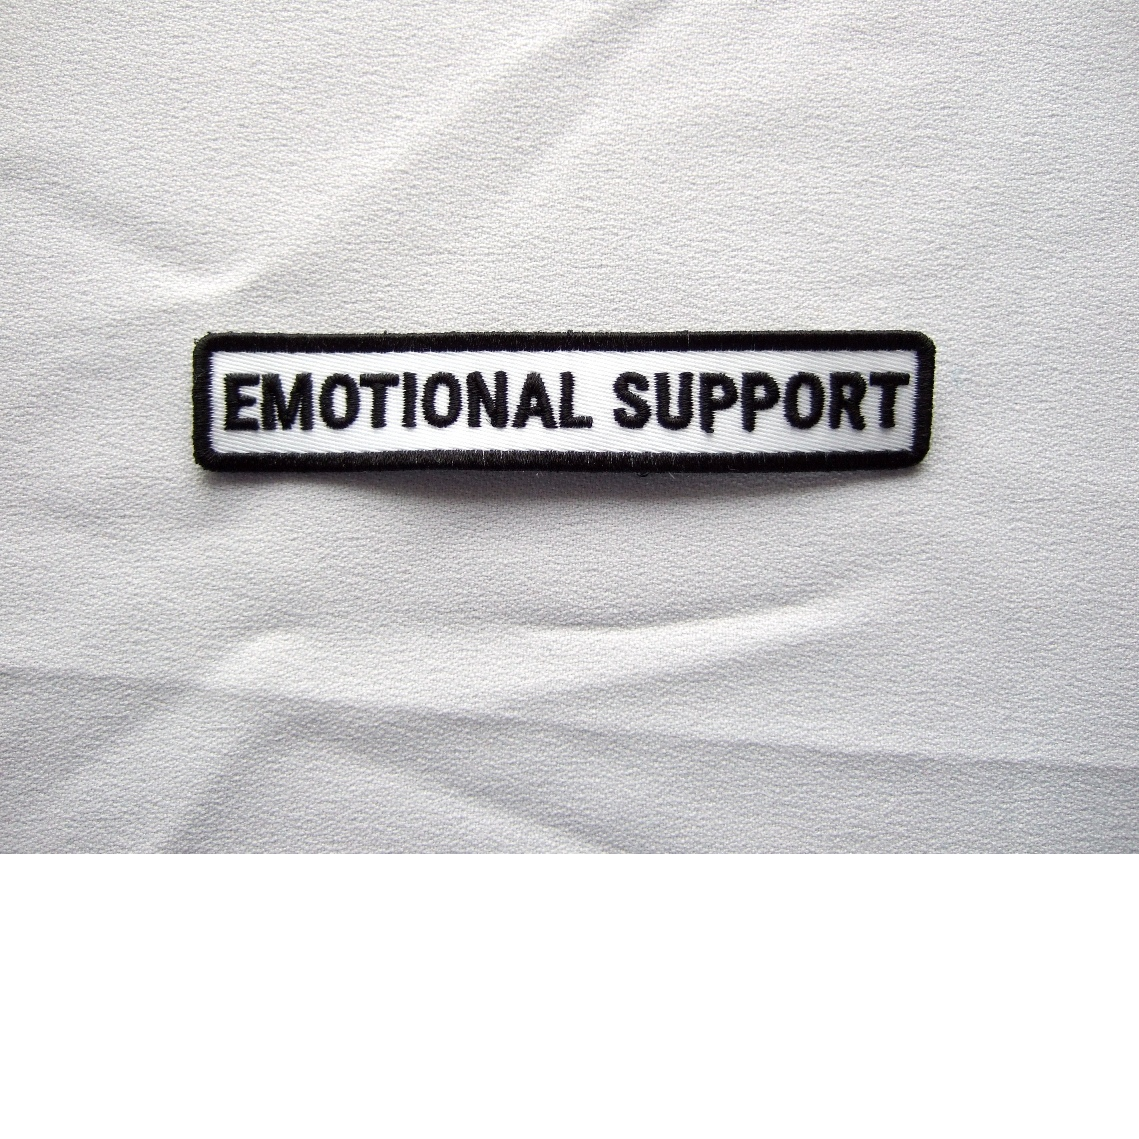 custom emotional support patch